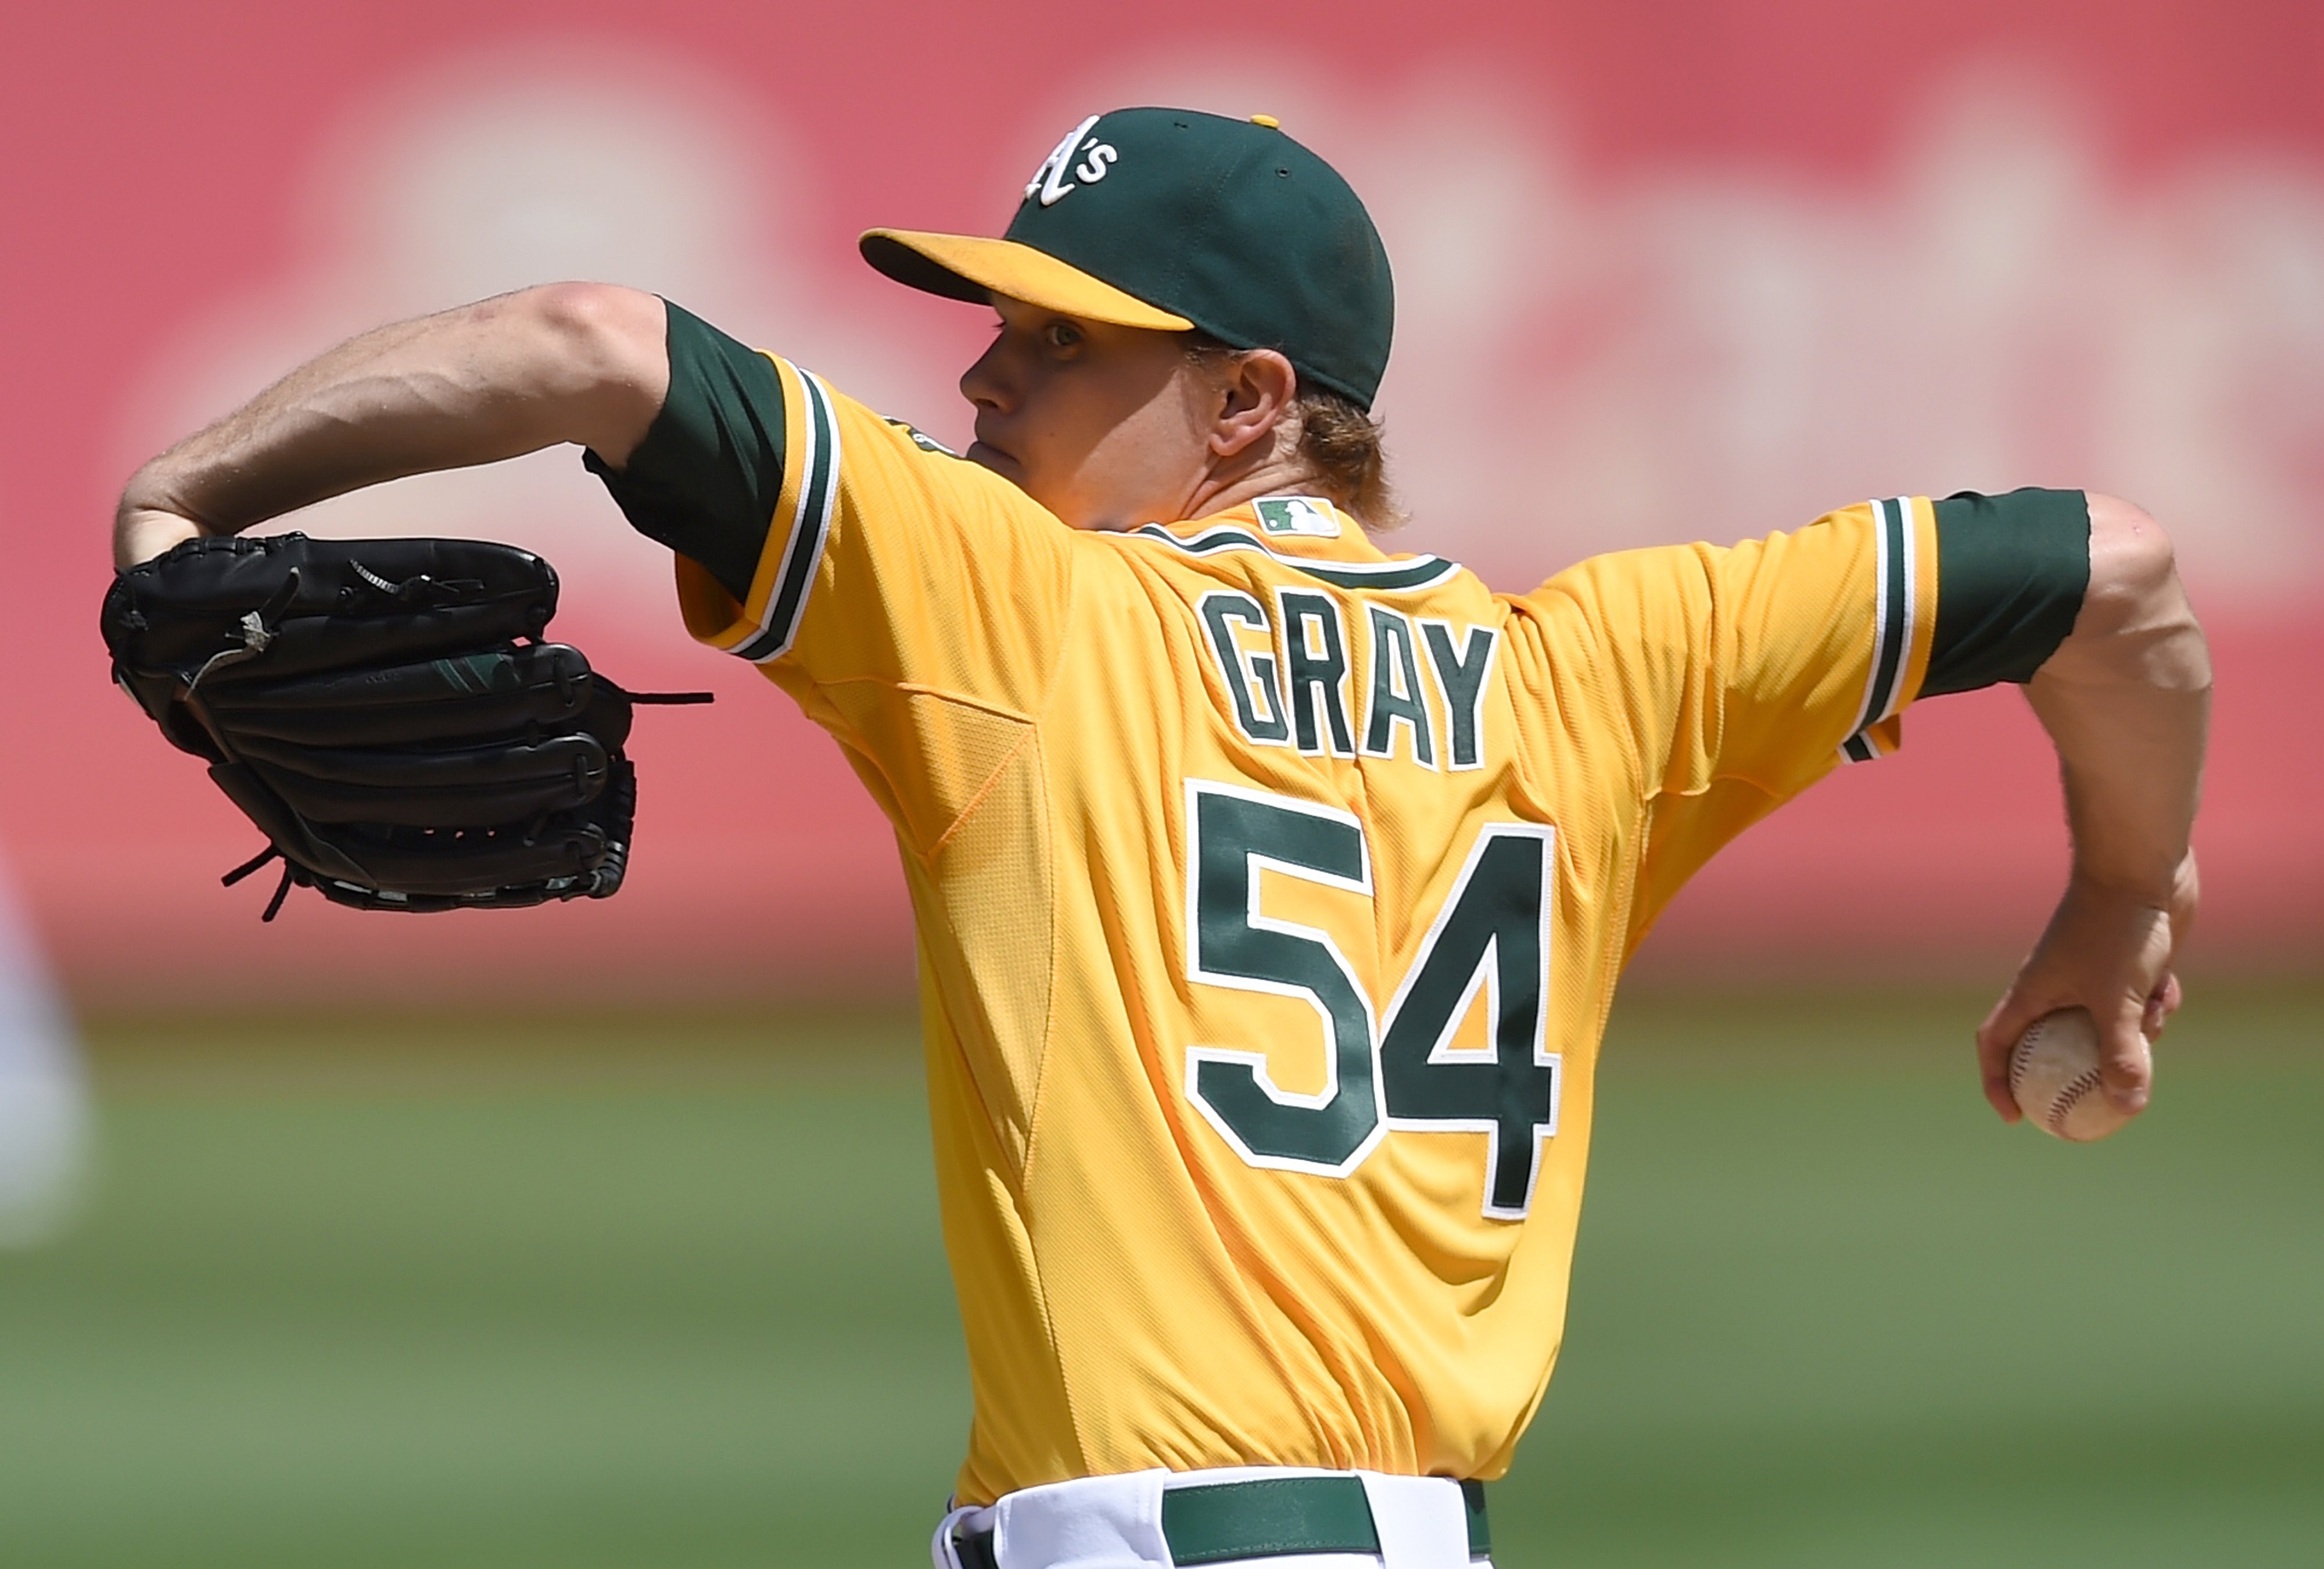 OAKLAND, CA - SEPTEMBER 02: Sonny Gray #54 of the Oakland Athletics pitches against the Los Angeles Angels of Anaheim in the top of the first inning at O.co Coliseum on September 2, 2015 in Oakland, California. (Photo by Thearon W. Henderson/Getty Images)